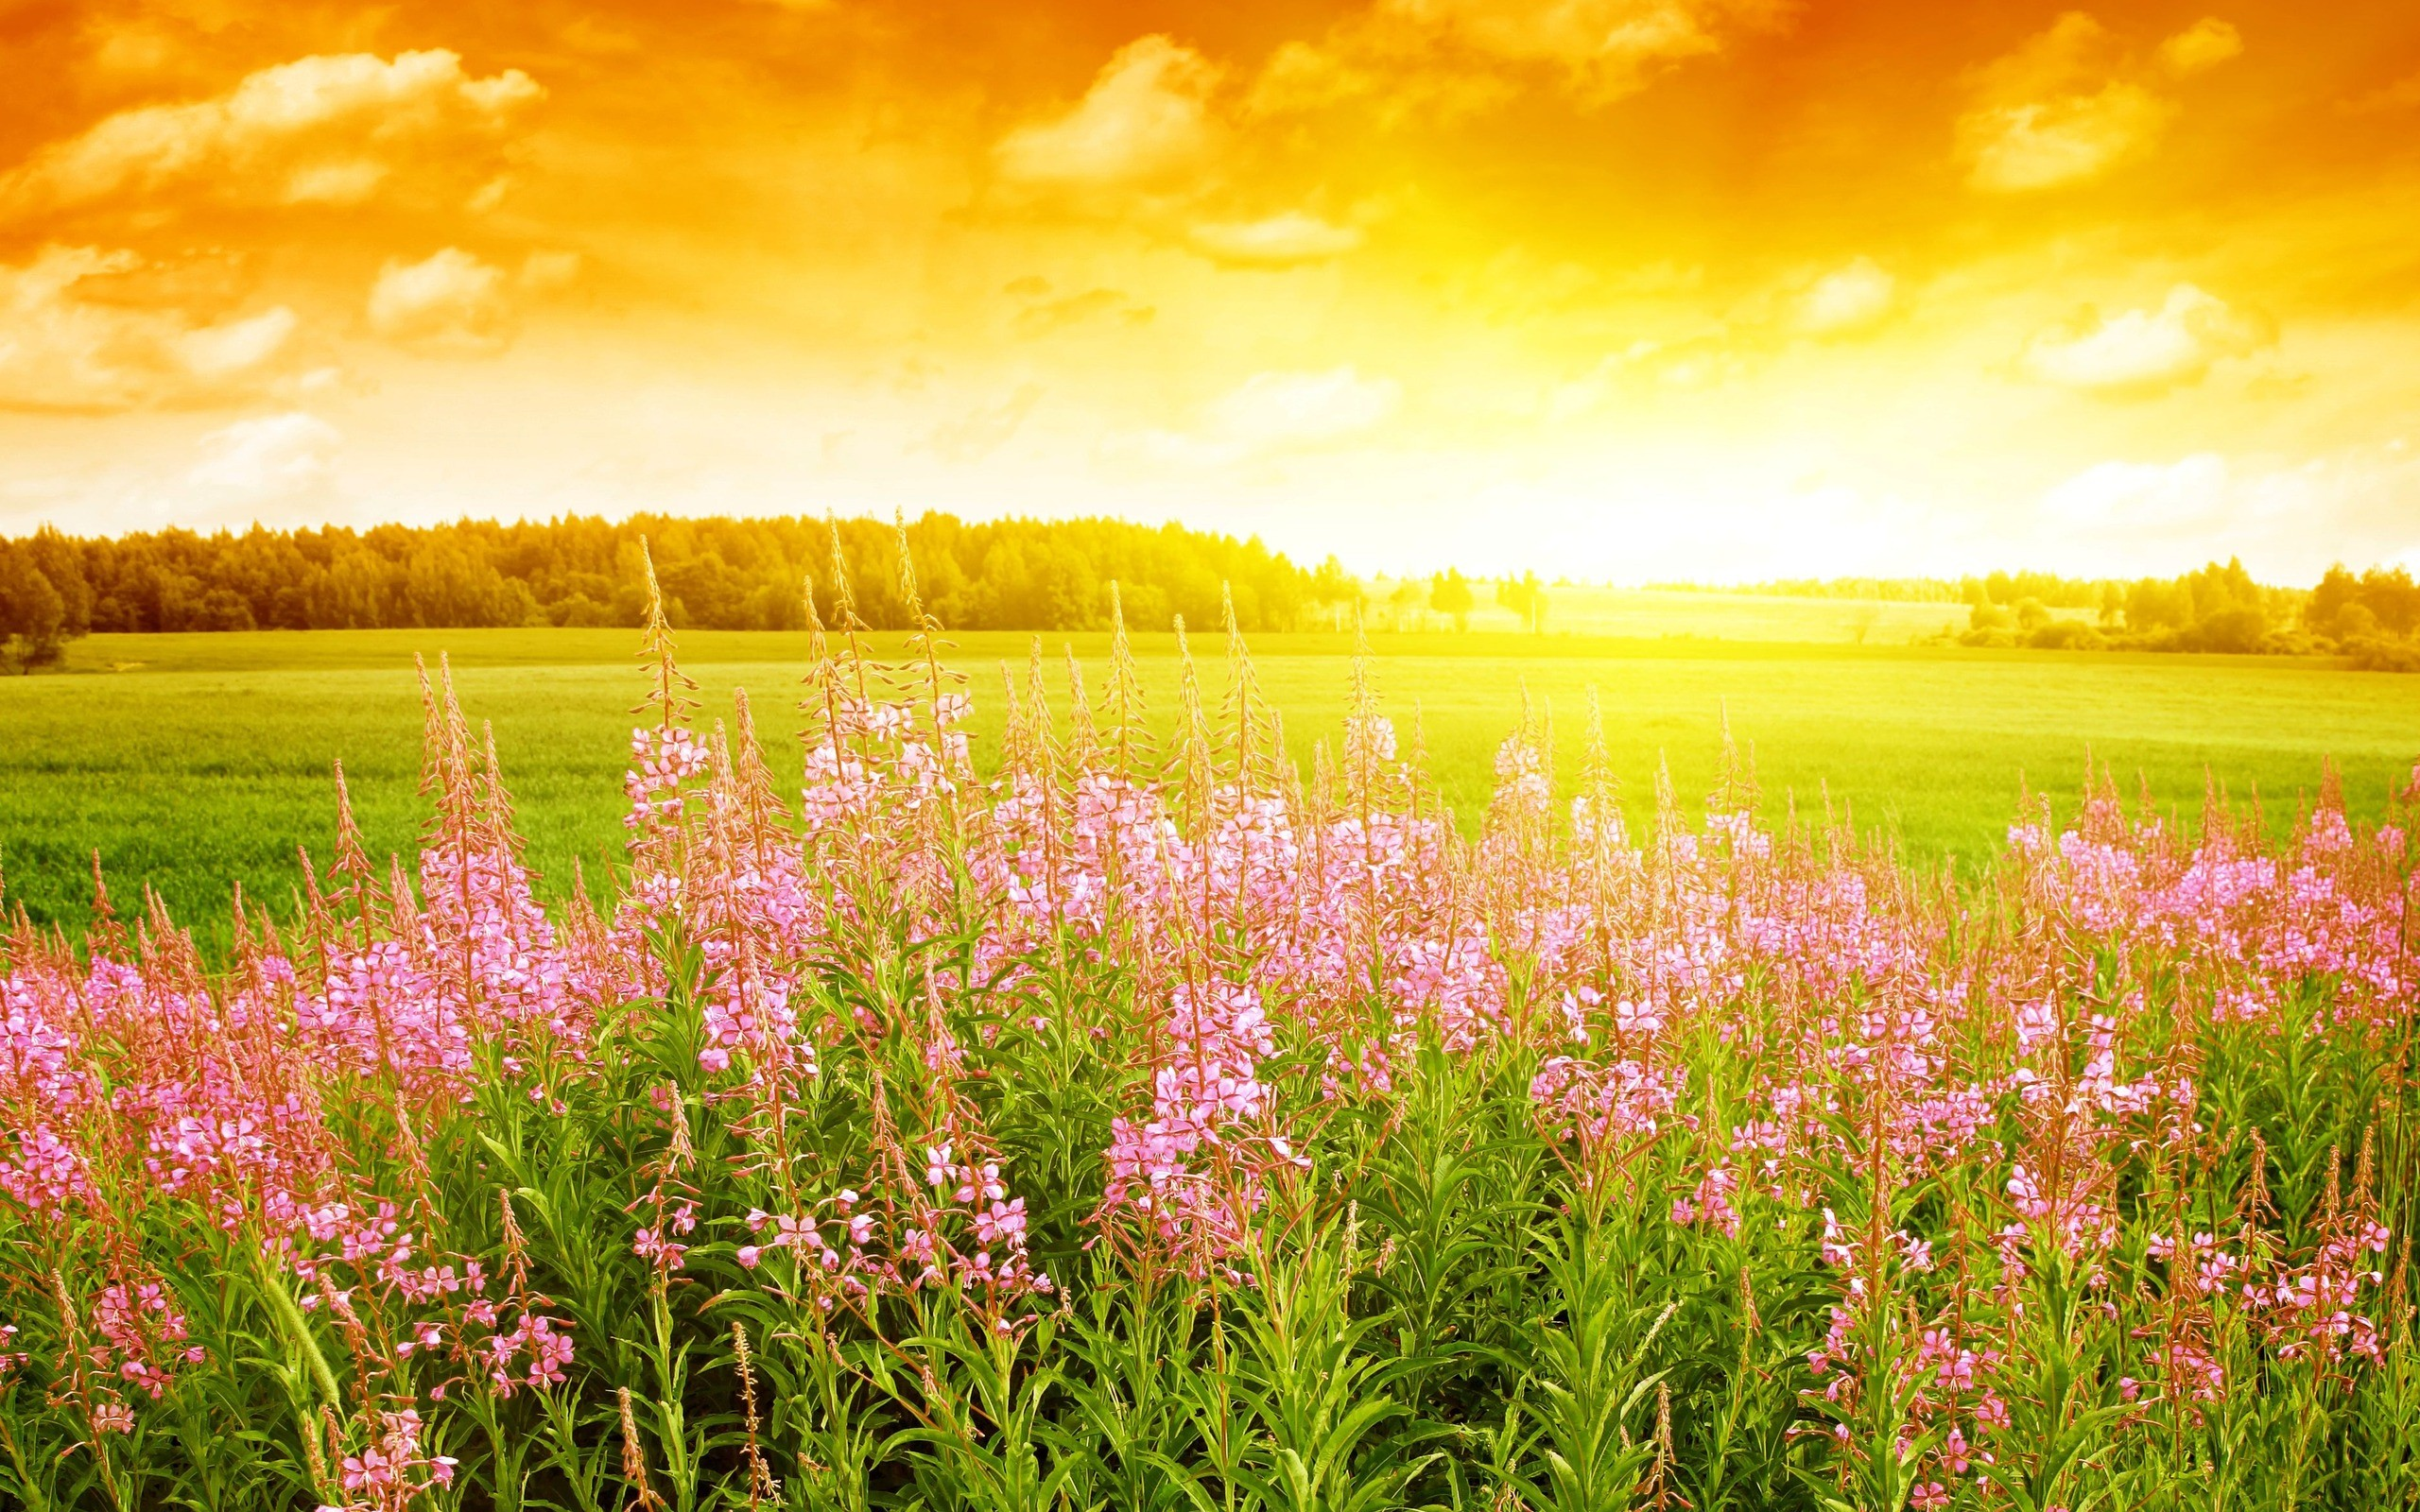 Spring wallpapers HD download 60 2560x1600